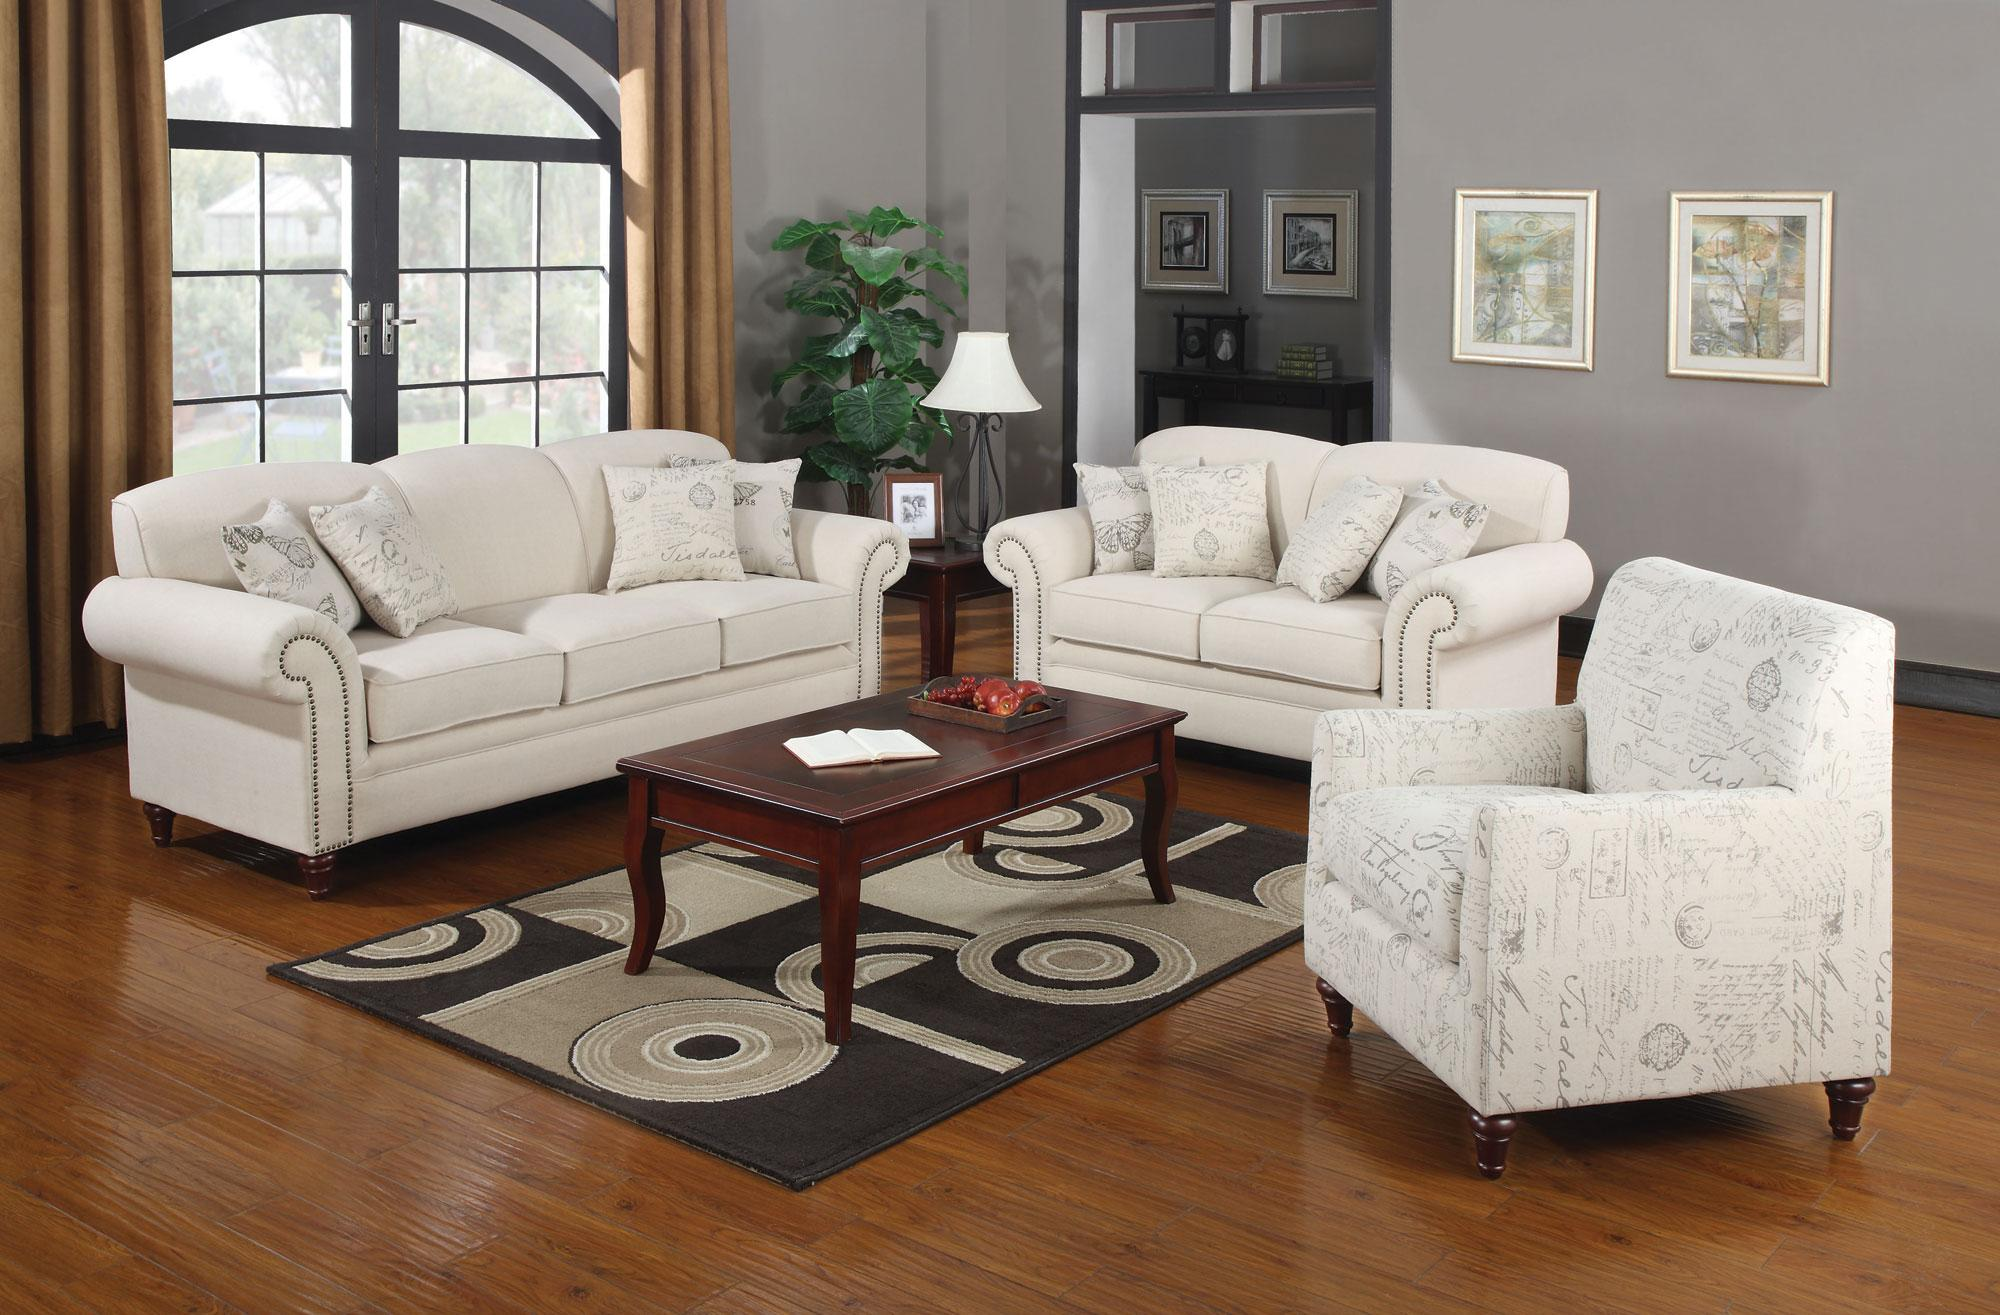 Coaster Norah Stationary Living Room Group - Item Number: 502510 Living Room Group 1